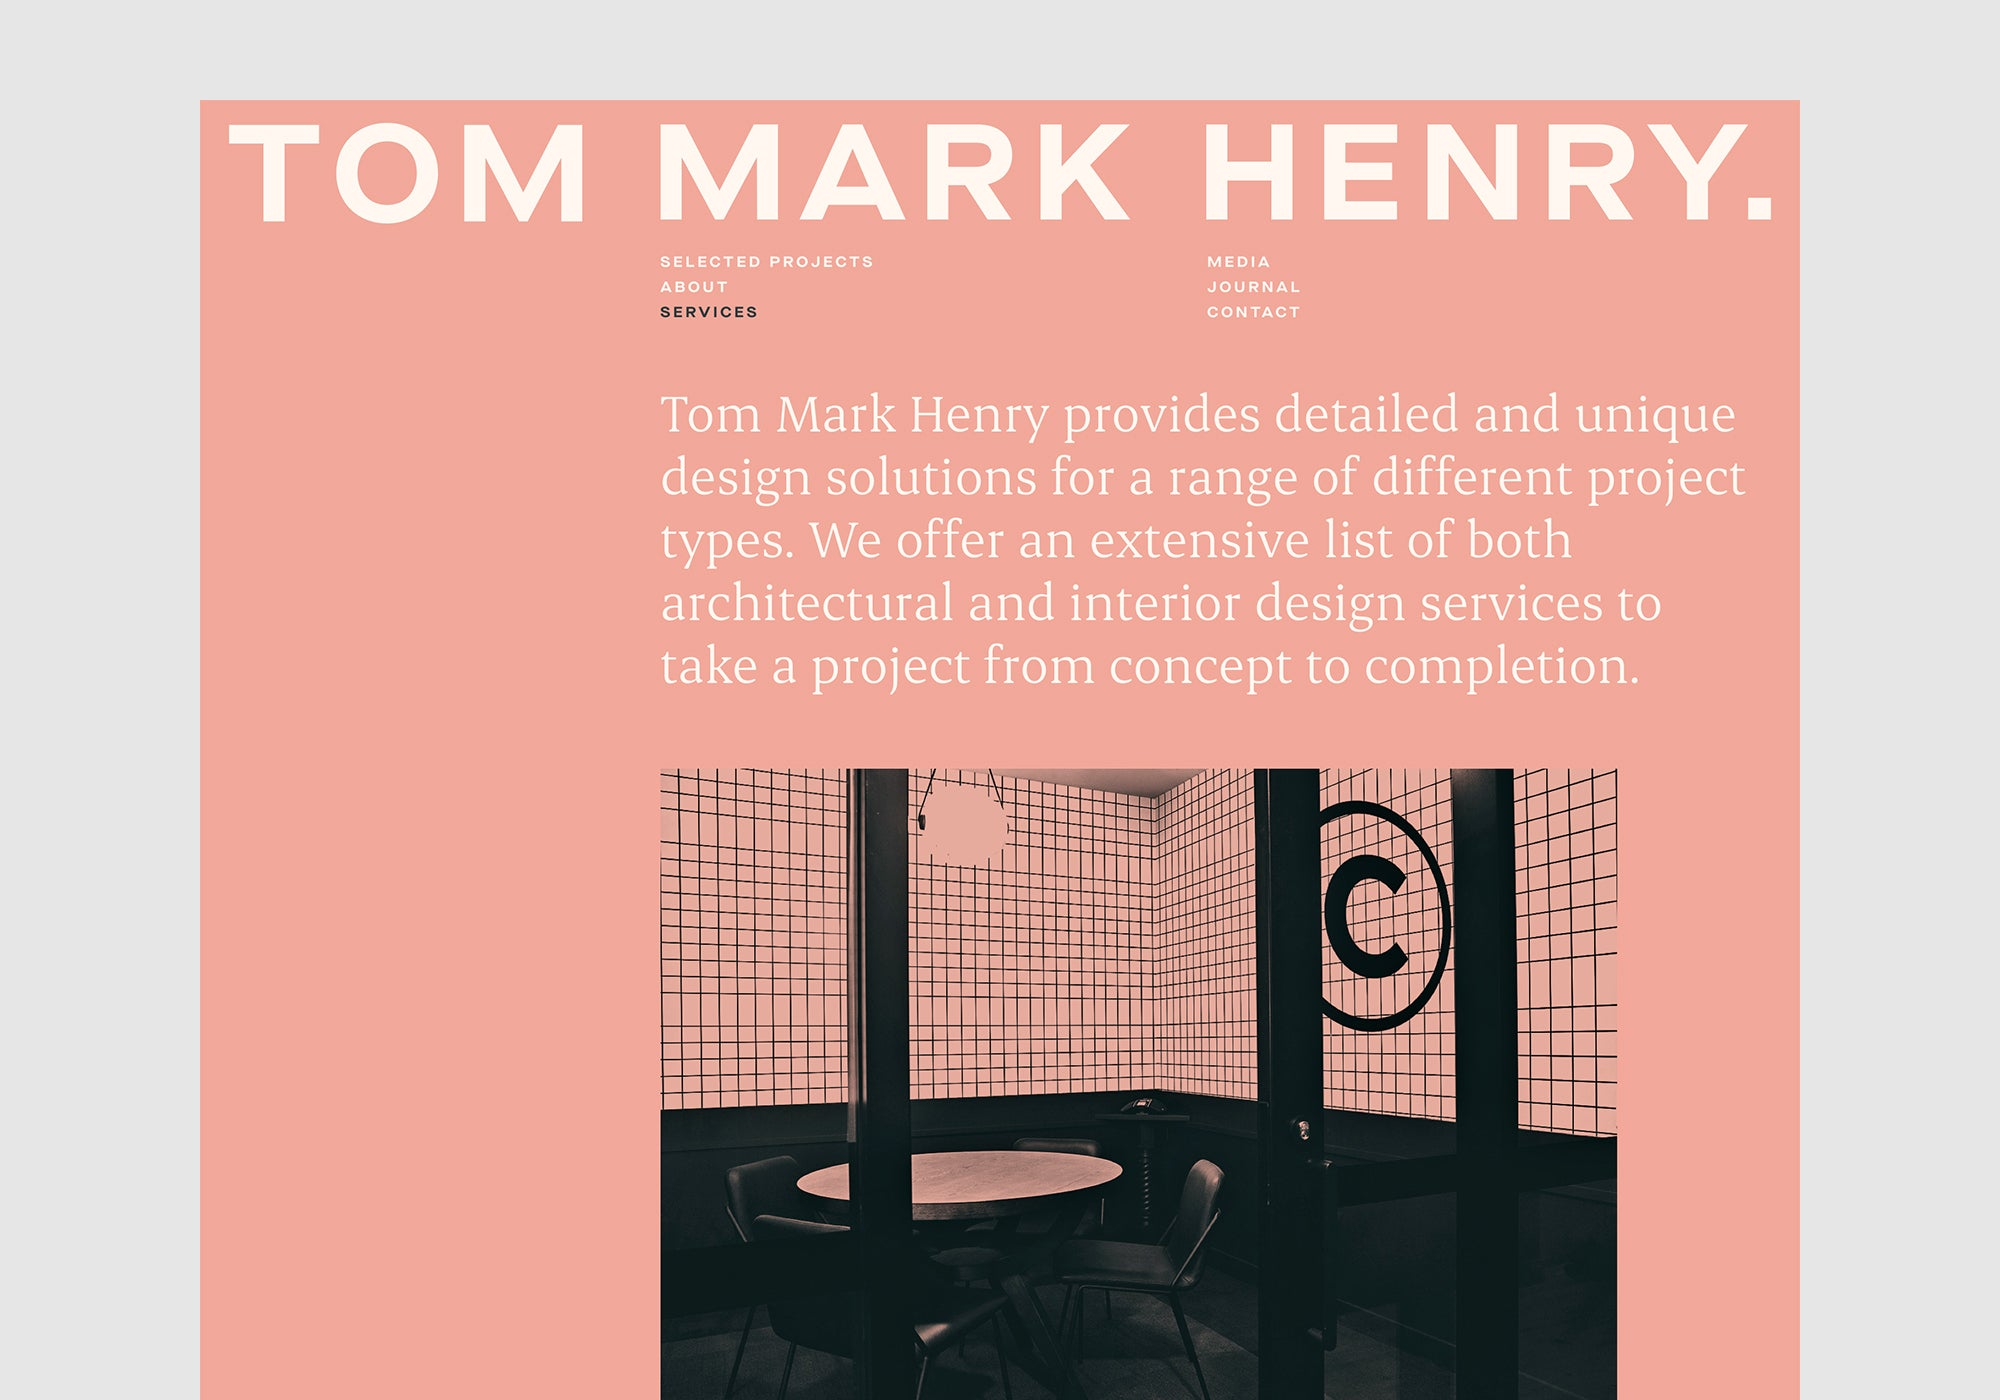 Christopher Doyle & Co: TomMarkHenry